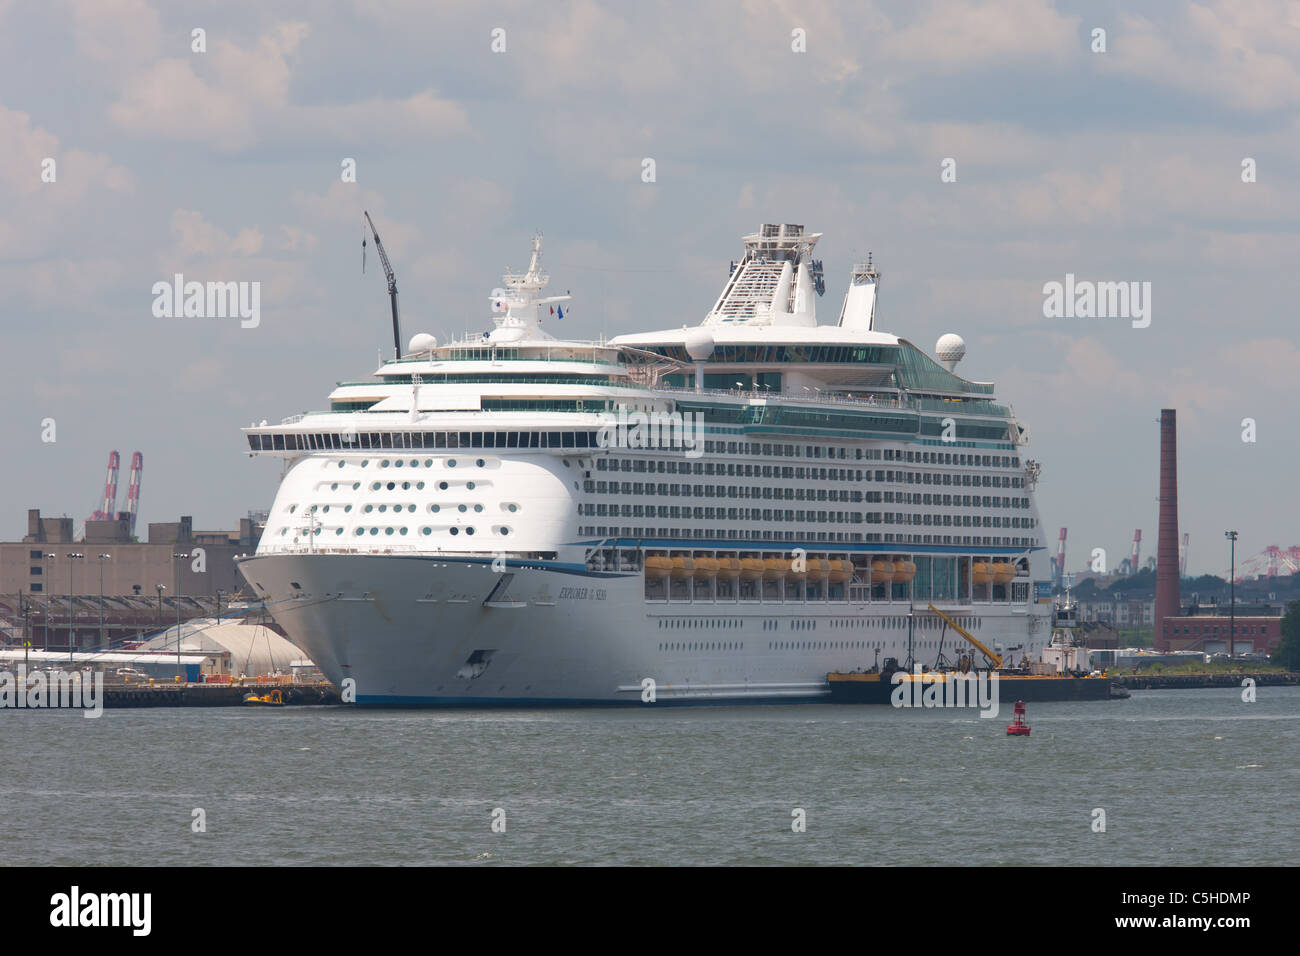 Royal Caribbean cruise ship Explorer of the Seas docked at the Cape Liberty Cruise Port in Bayonne, New Jersey. - Stock Image